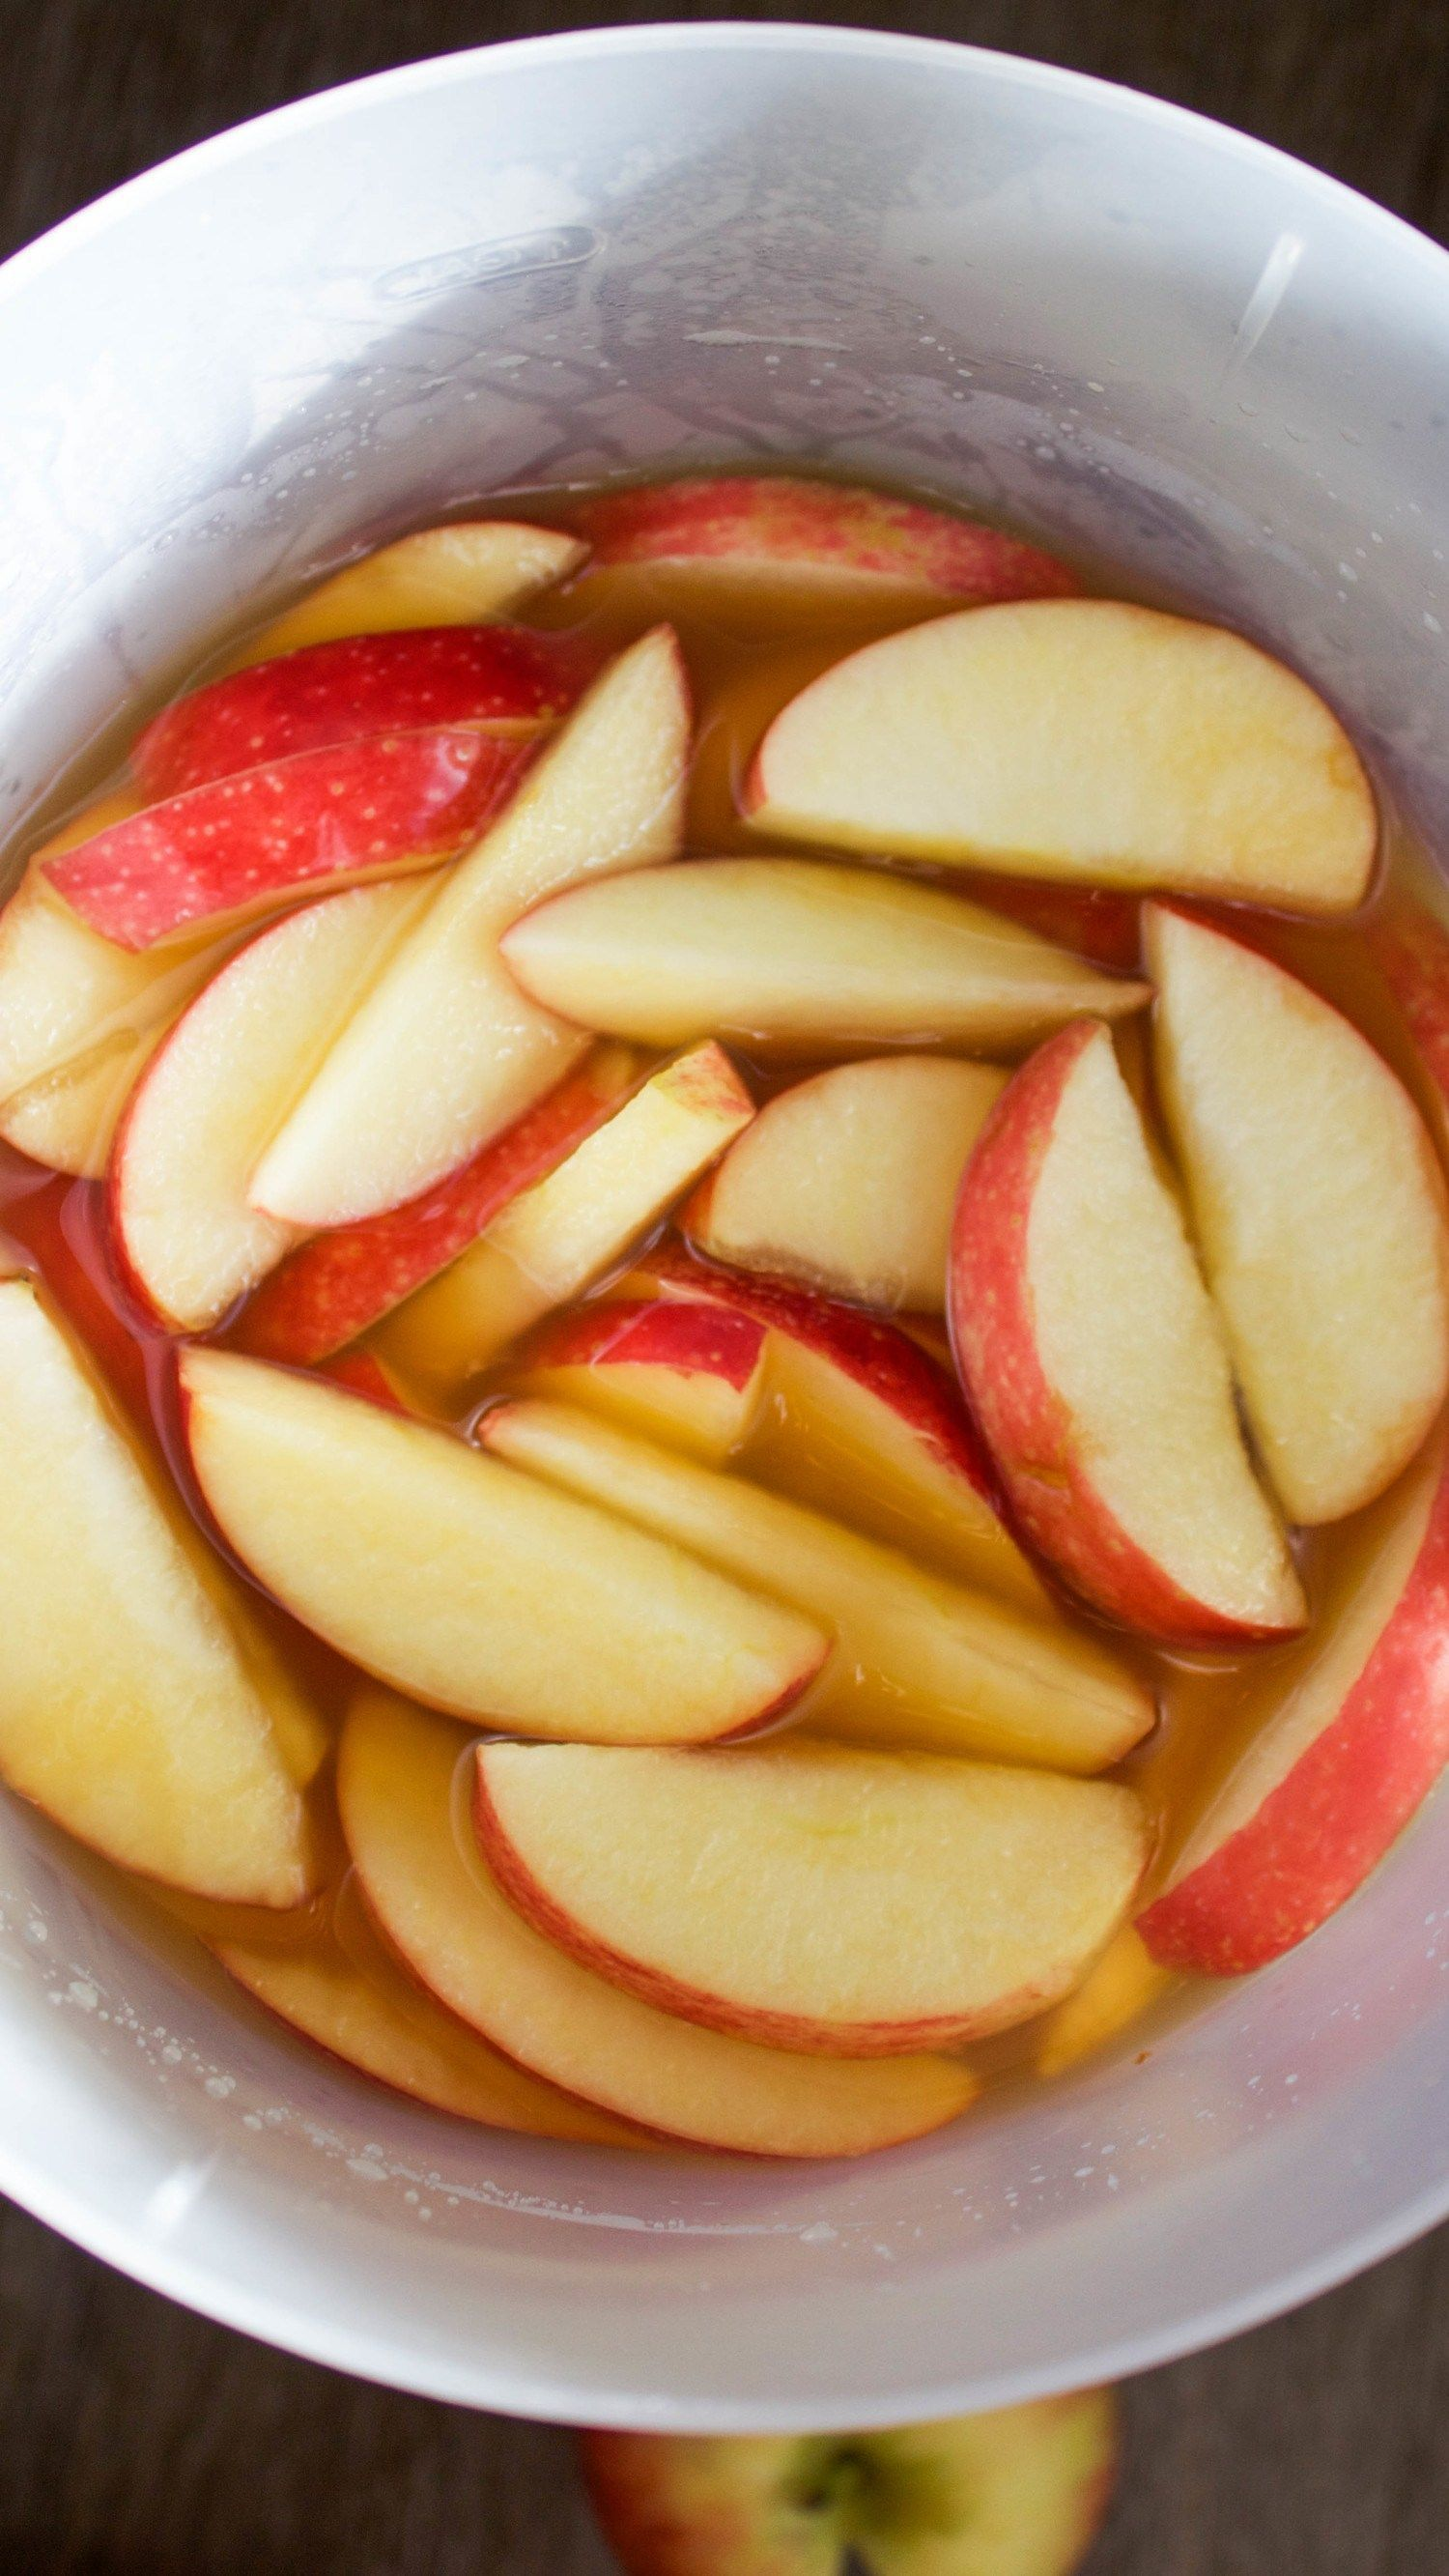 Apple Cider Sangria #applecidersangriarecipe This is the best apple cider sangria recipe! It's made with apple cider, pinot grigio, fresh honeycrisp apples and a cinnamon sugar rim. This is such a great thanksgiving drink or fall drink to serve to a crown. #sangria #applecider #cinnamon #fall #drink #cocktail #honeycrisp #applecidersangriarecipe Apple Cider Sangria #applecidersangriarecipe This is the best apple cider sangria recipe! It's made with apple cider, pinot grigio, fresh honeycrisp app #applecidersangriarecipe